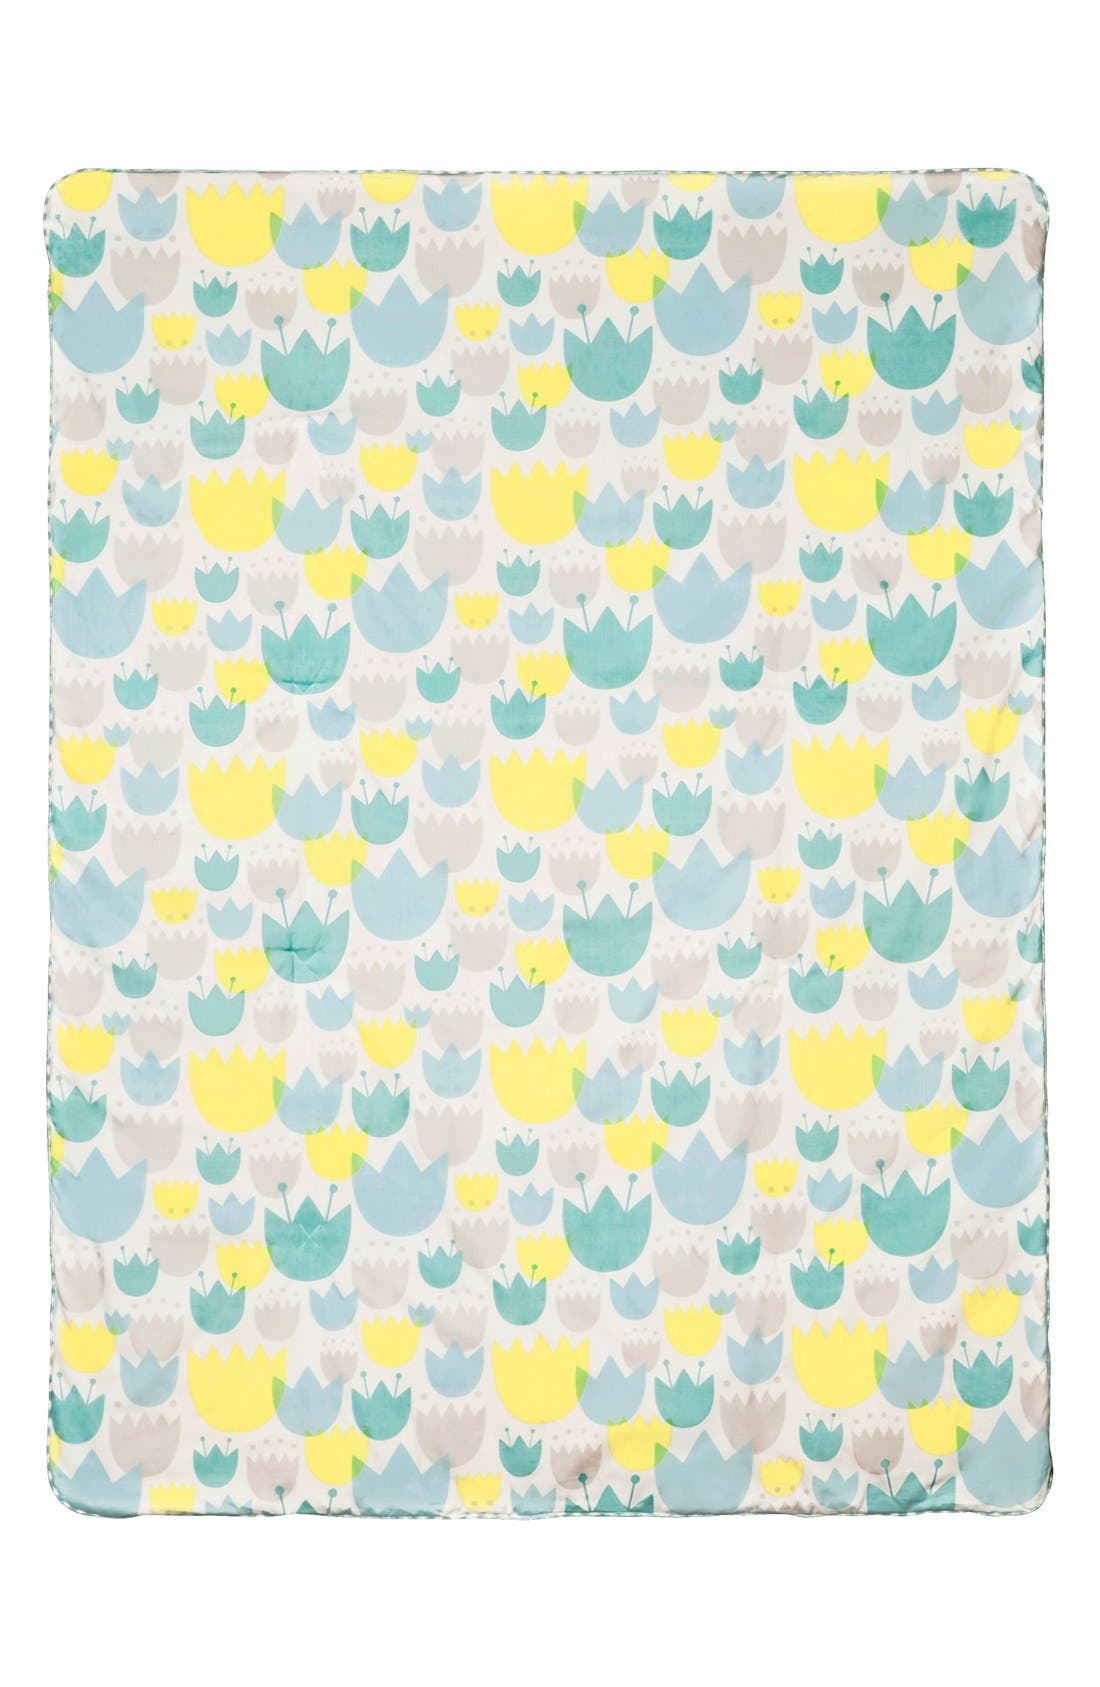 'Garden' Crib Sheet, Crib Skirt, Changing Pad Cover, Play Blanket & Wall Decals,                             Alternate thumbnail 3, color,                             BLUE